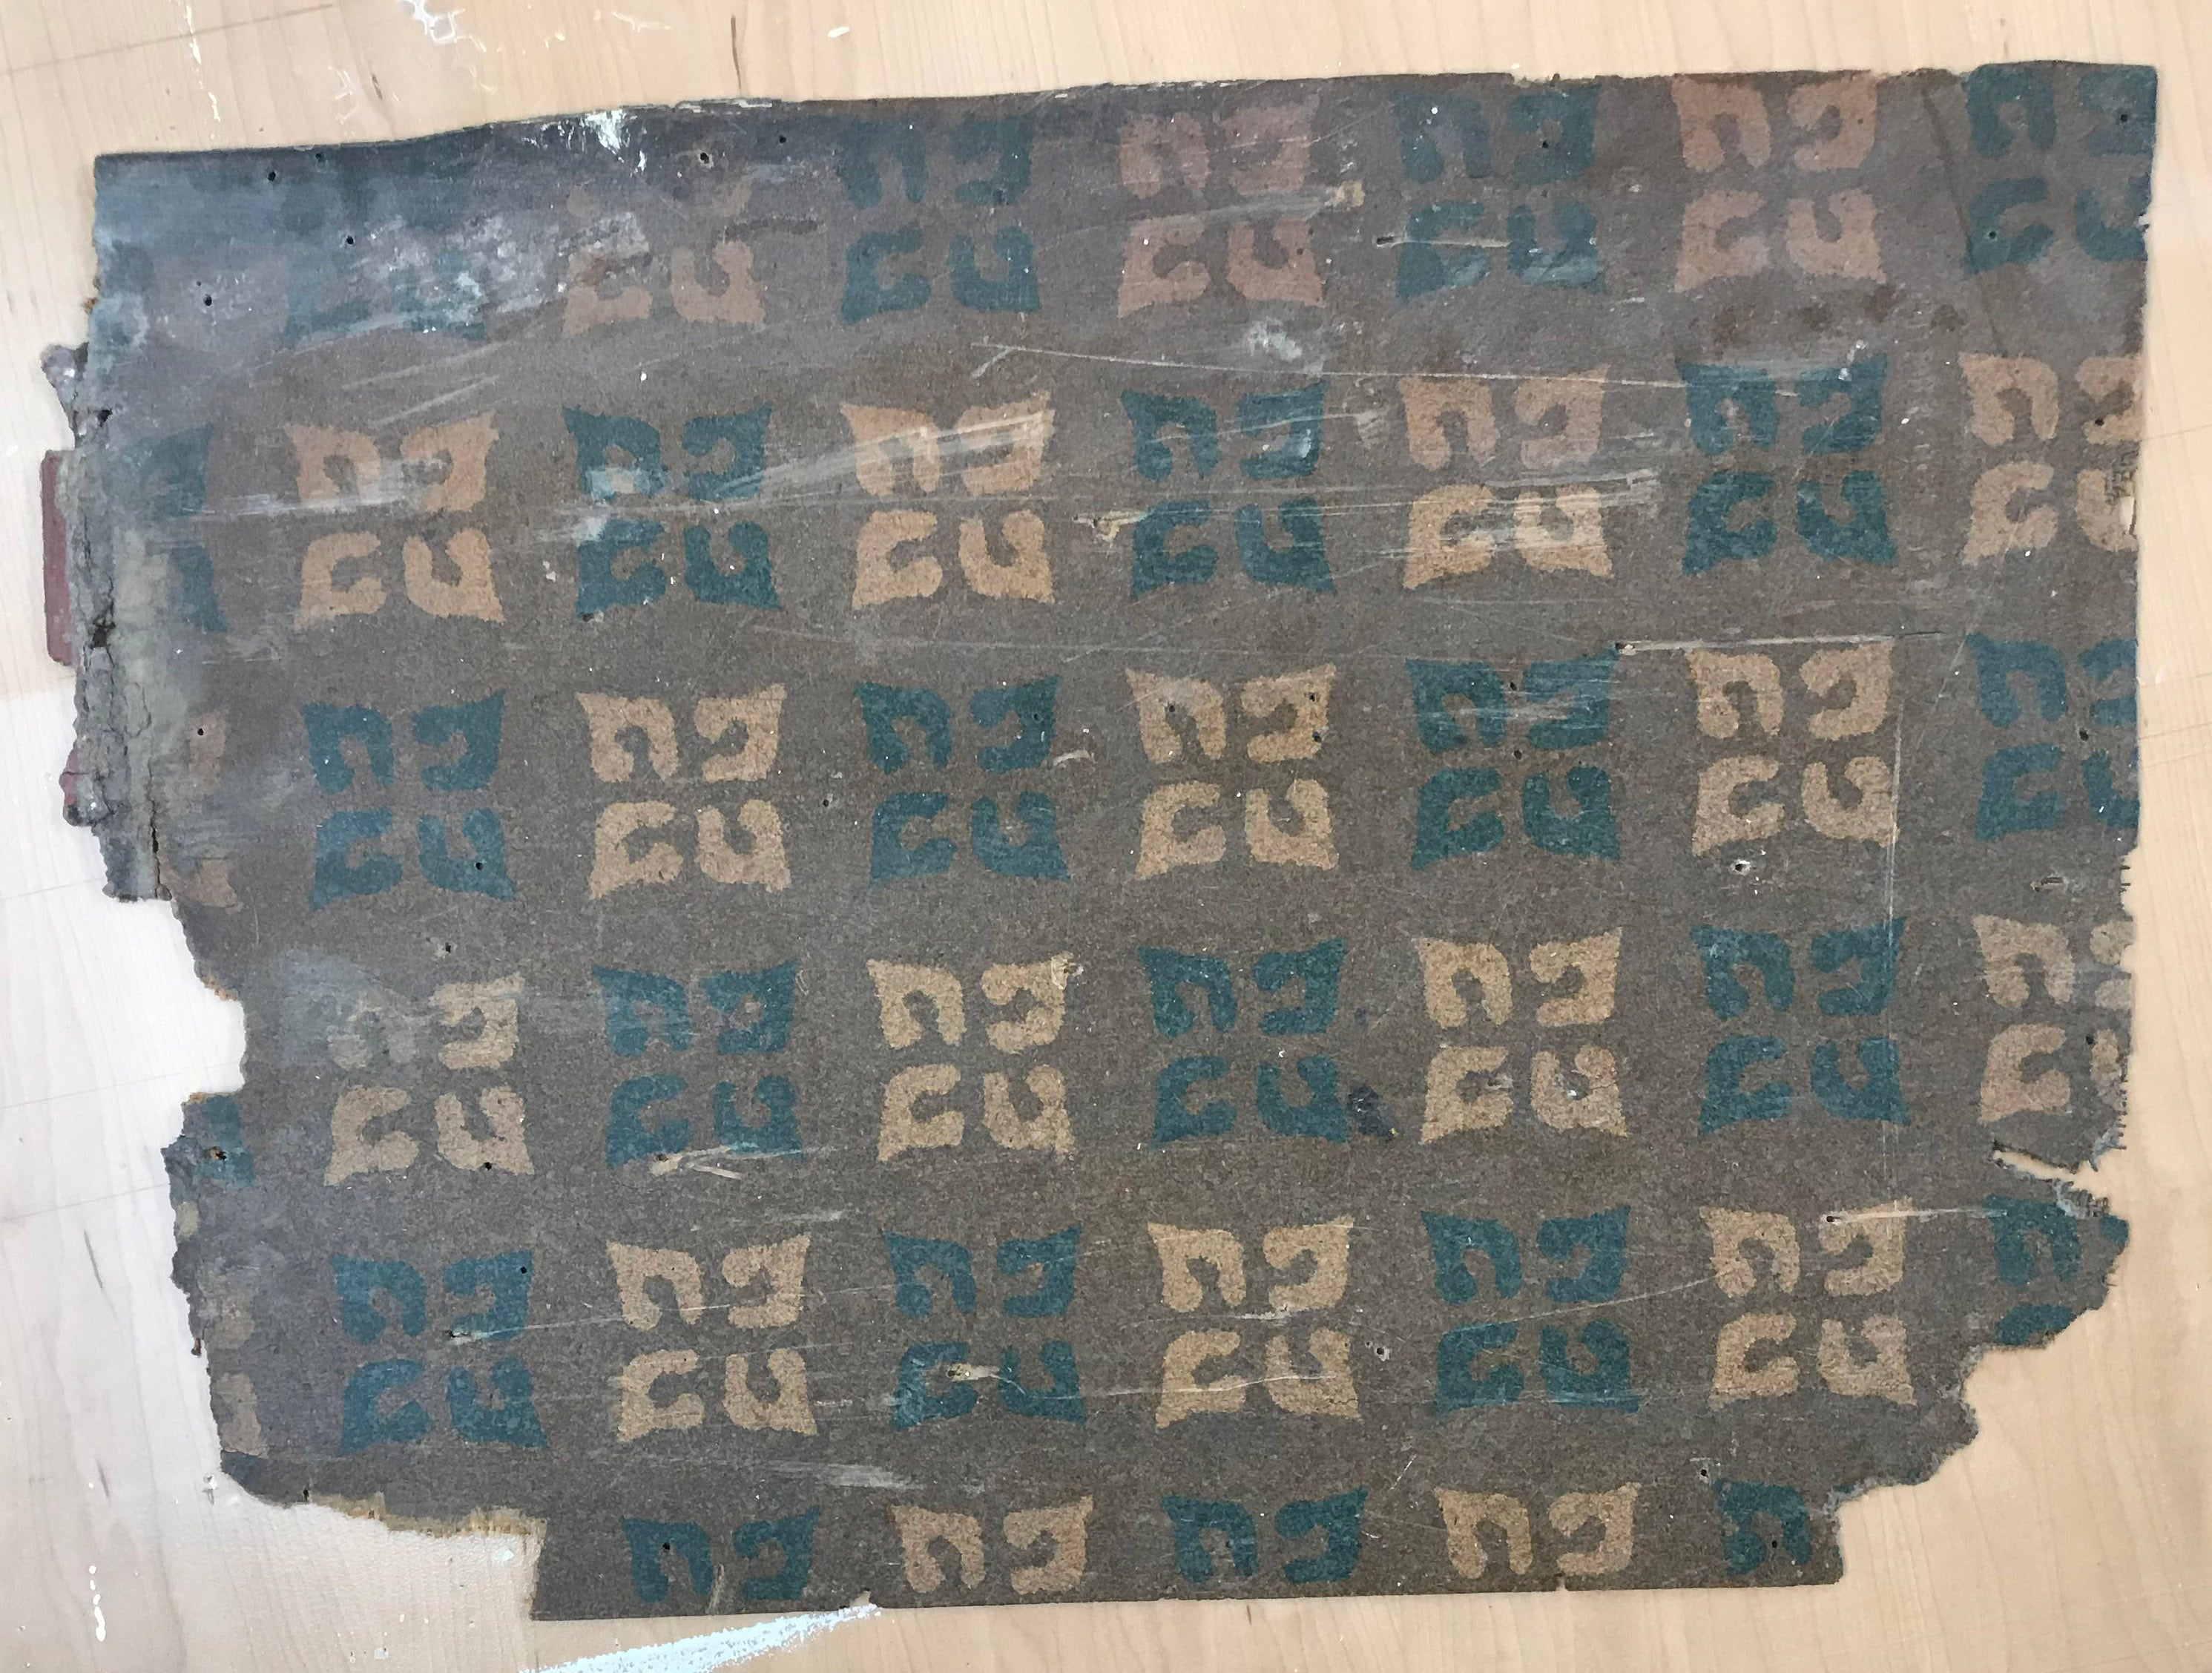 This is the source for this floorcloth - a scrap of the original linoleum.